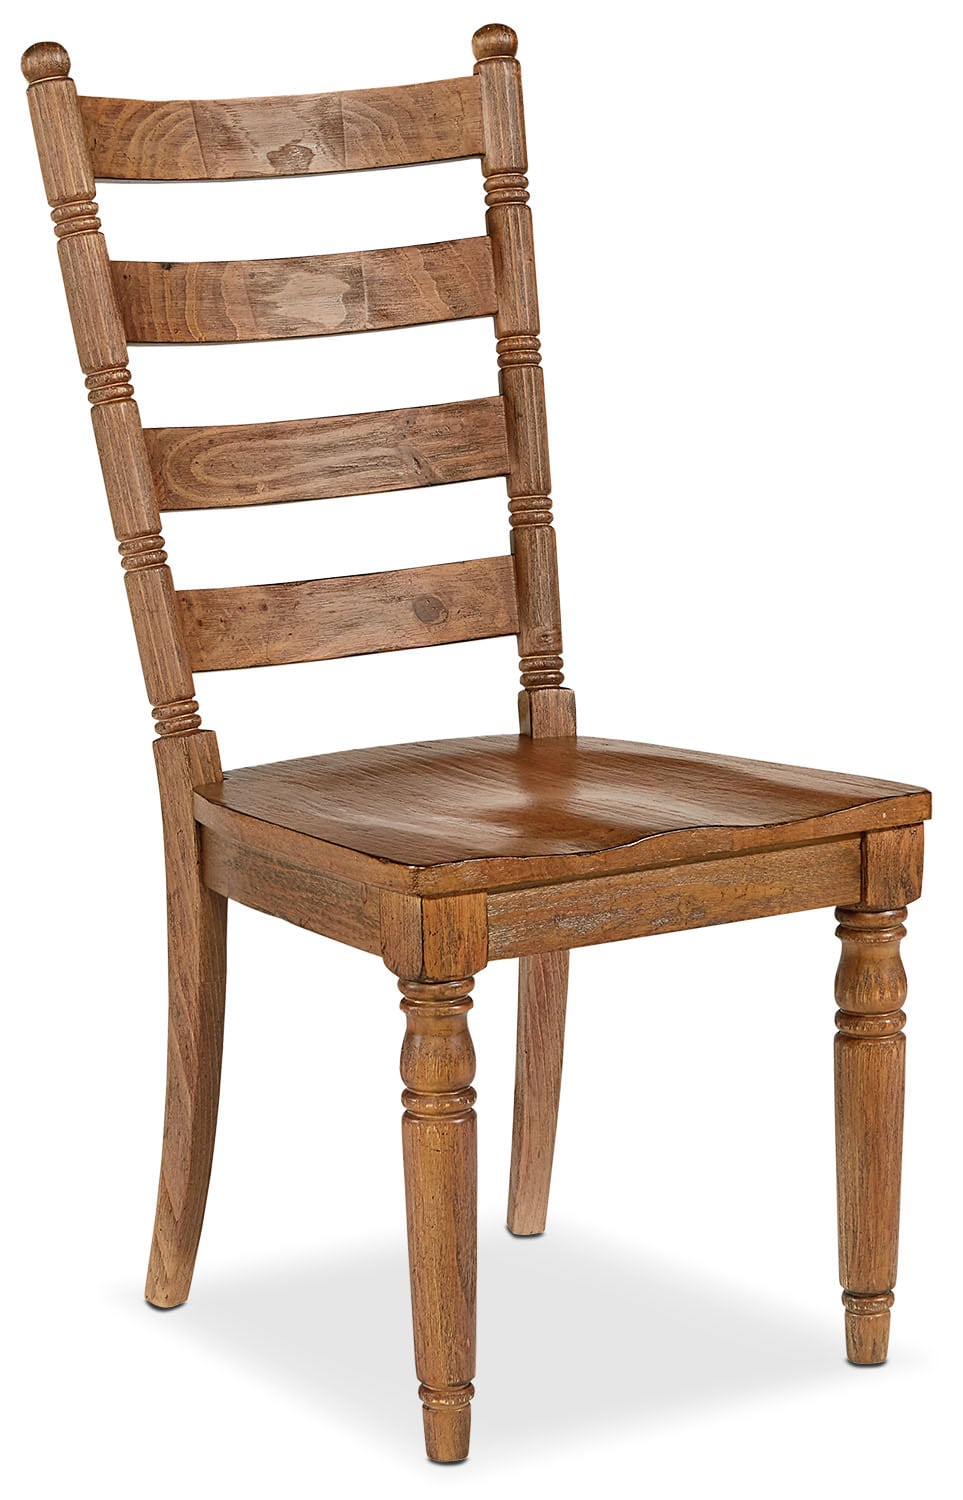 Dining Room Furniture - Primitive Slat Back Side Chair - Bench